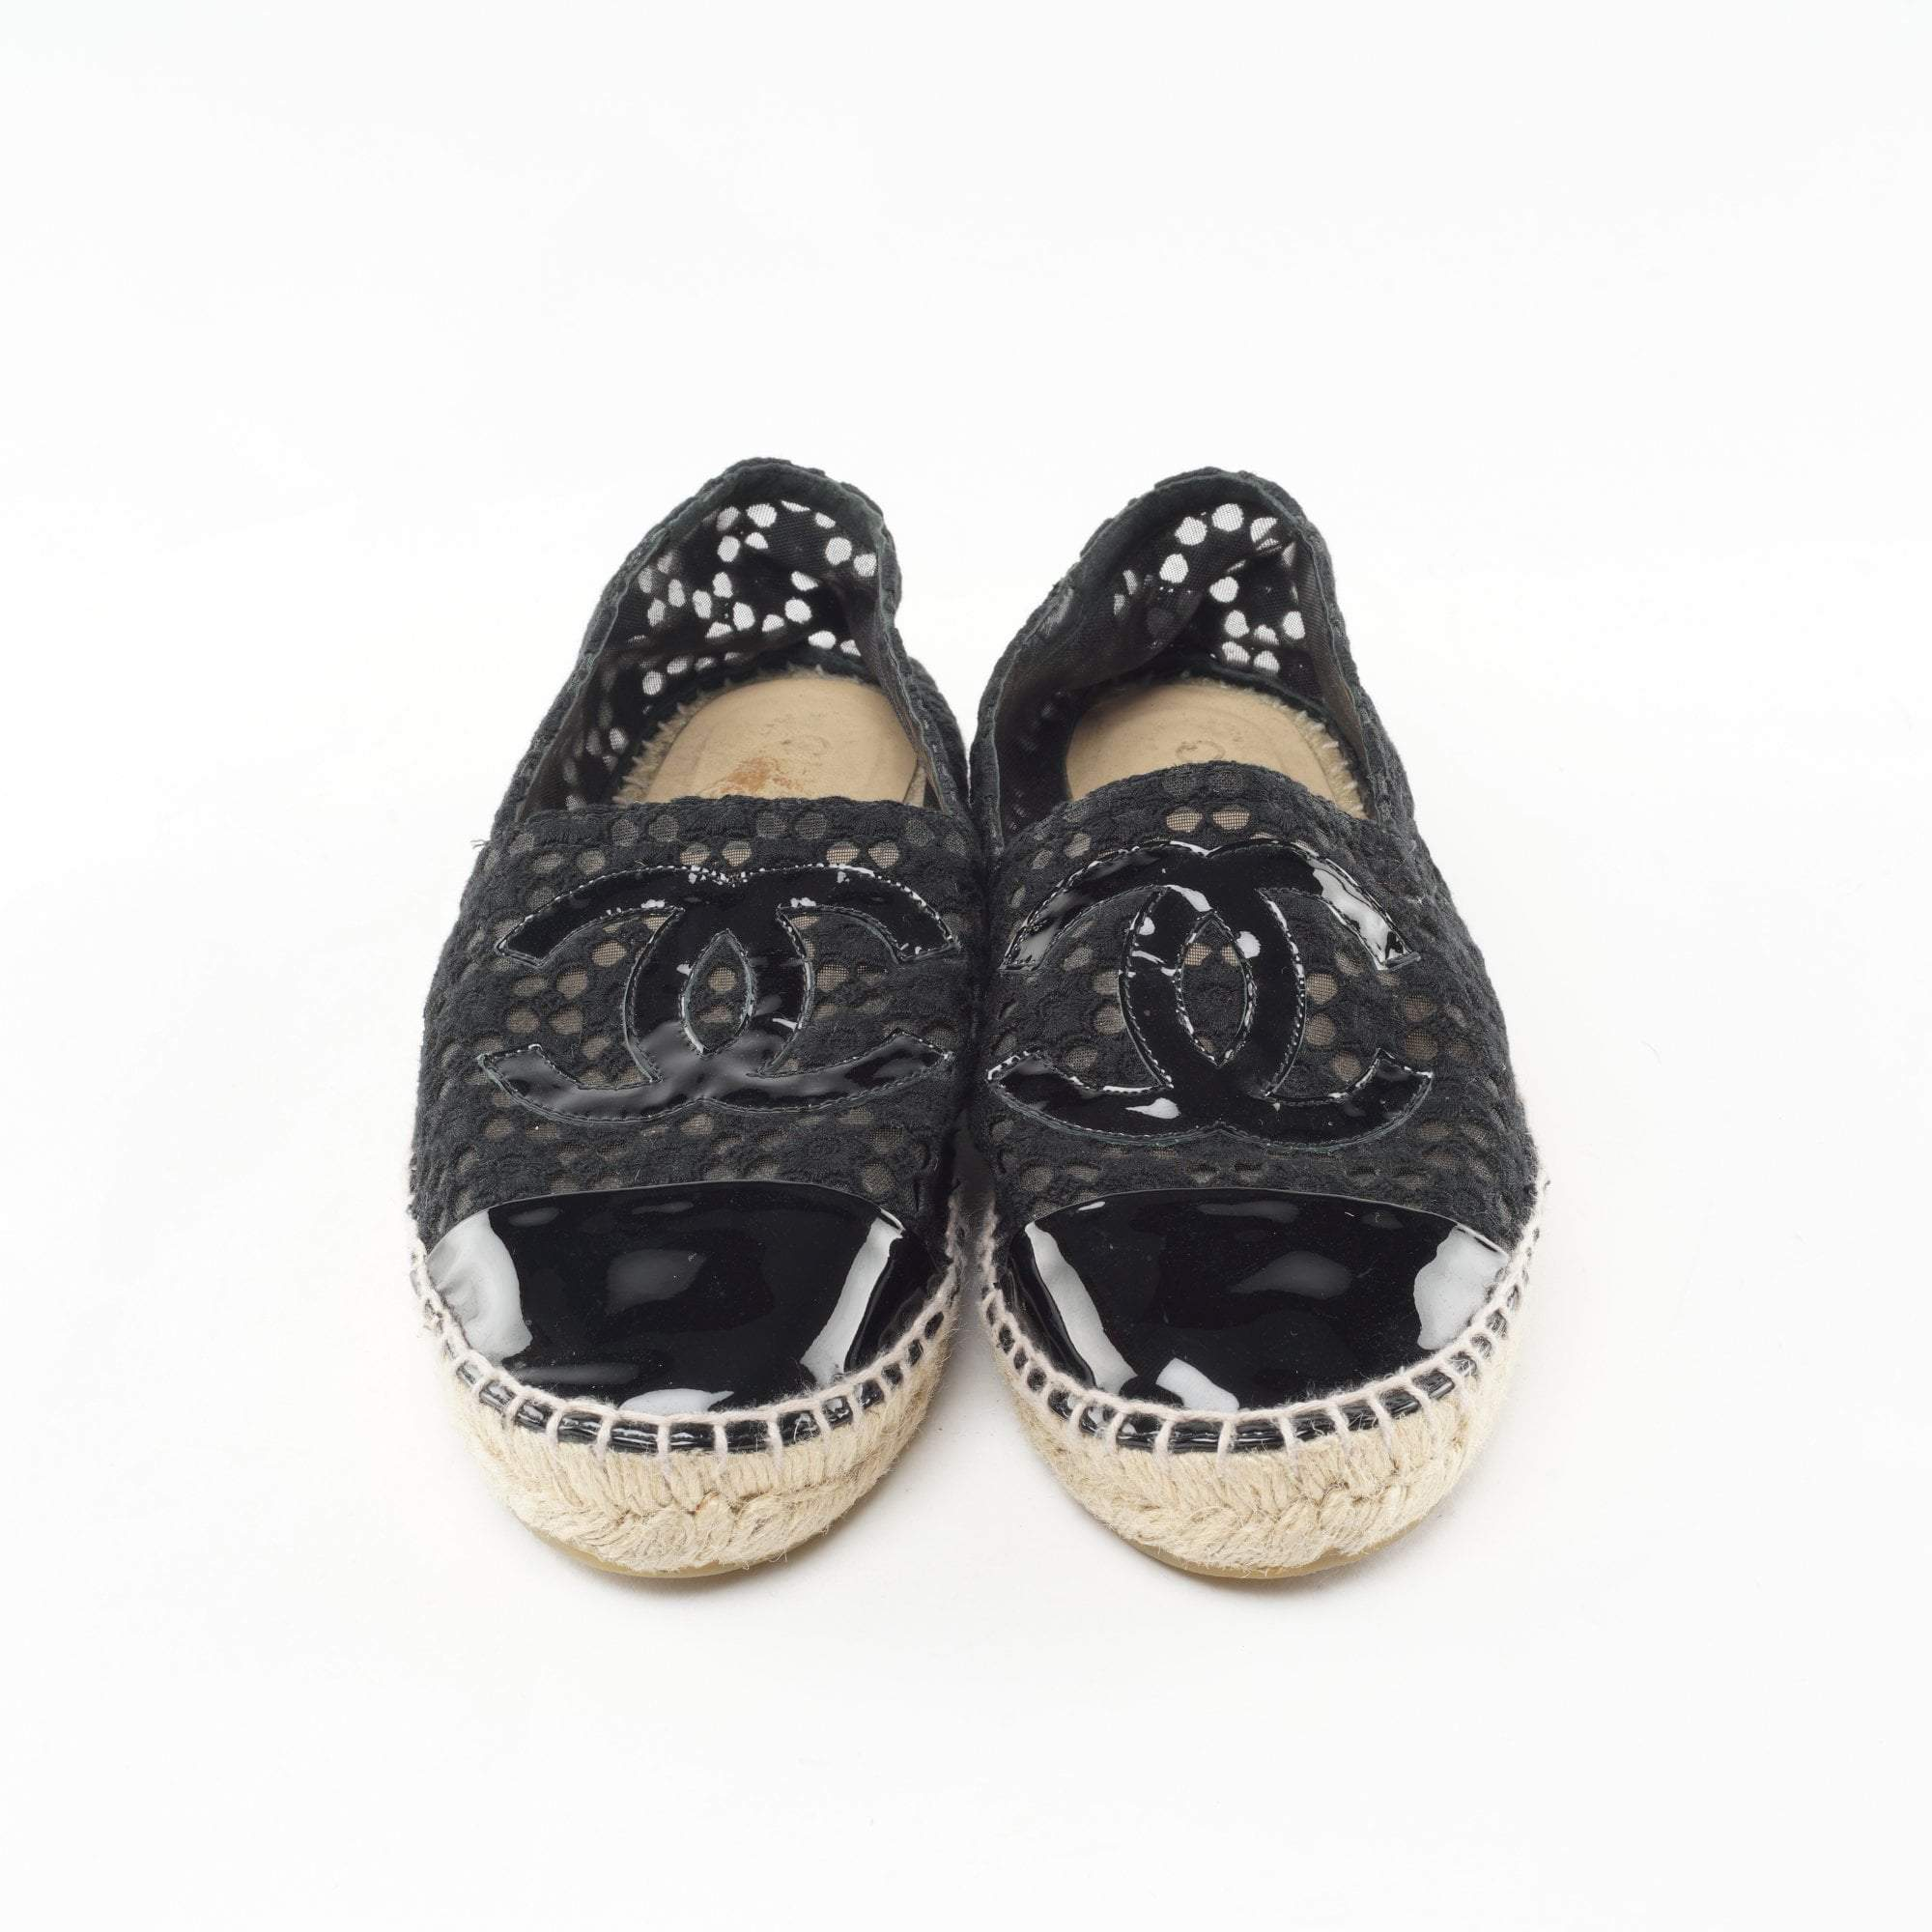 Chanel Black Lace Espadrilles